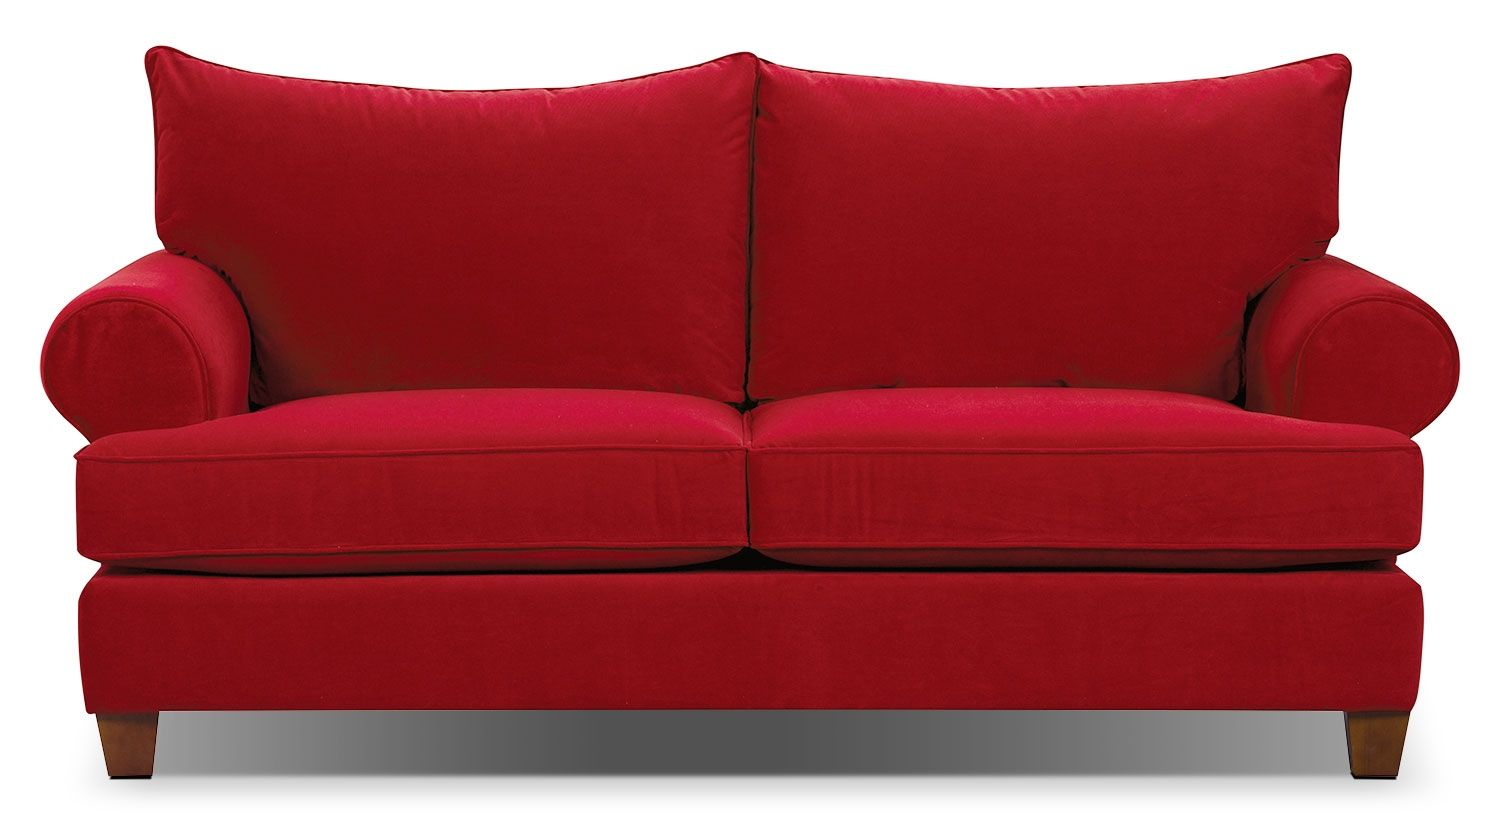 Paige Microsuede Sofa Red The Brick Sofa Bed Red